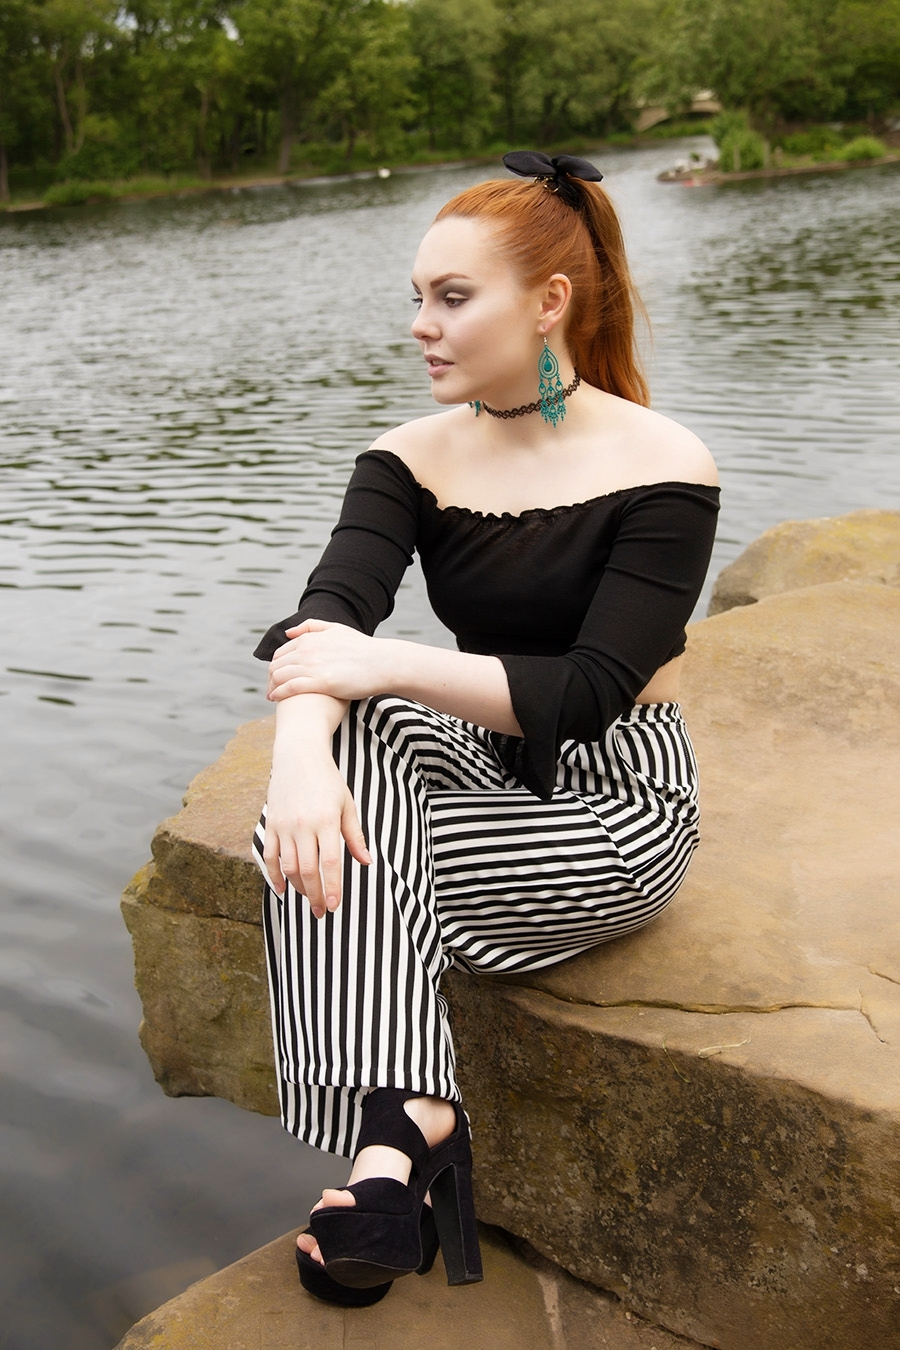 Lake side / Photography by Chris Horgan, Model 'M', Makeup by 'M', Stylist 'M' / Uploaded 2nd June 2019 @ 11:59 PM